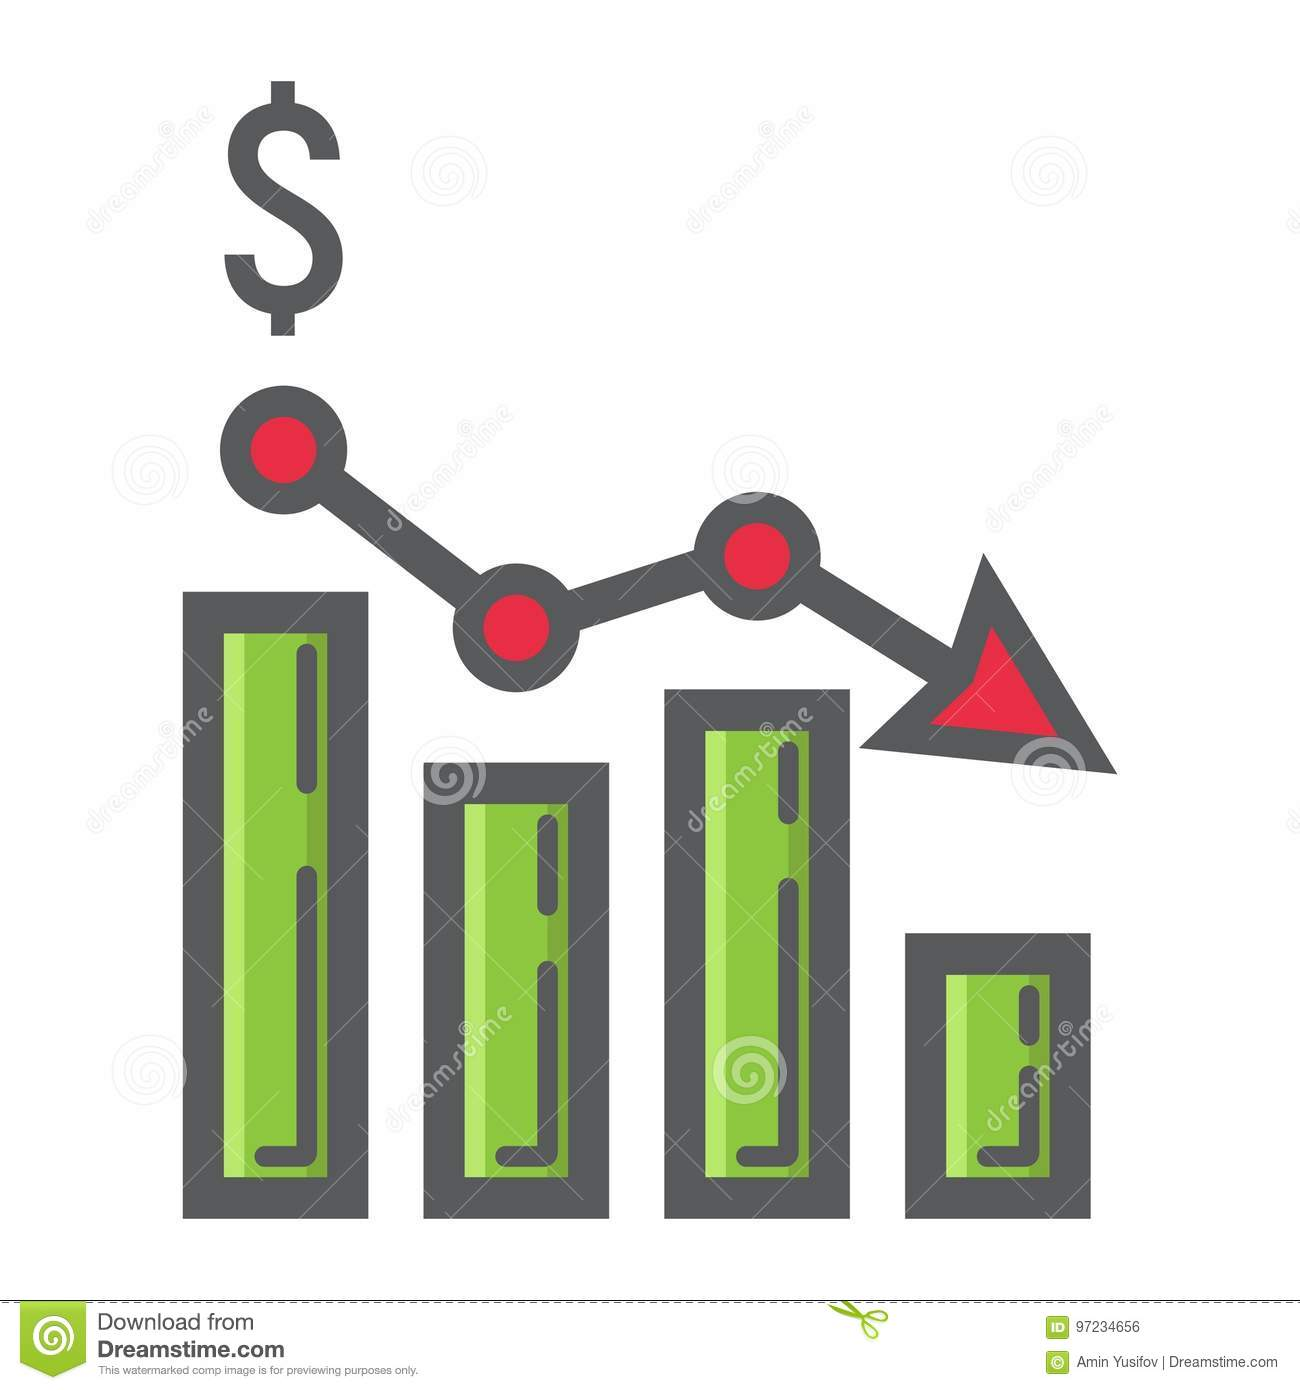 Declining graph filled outline icon, business